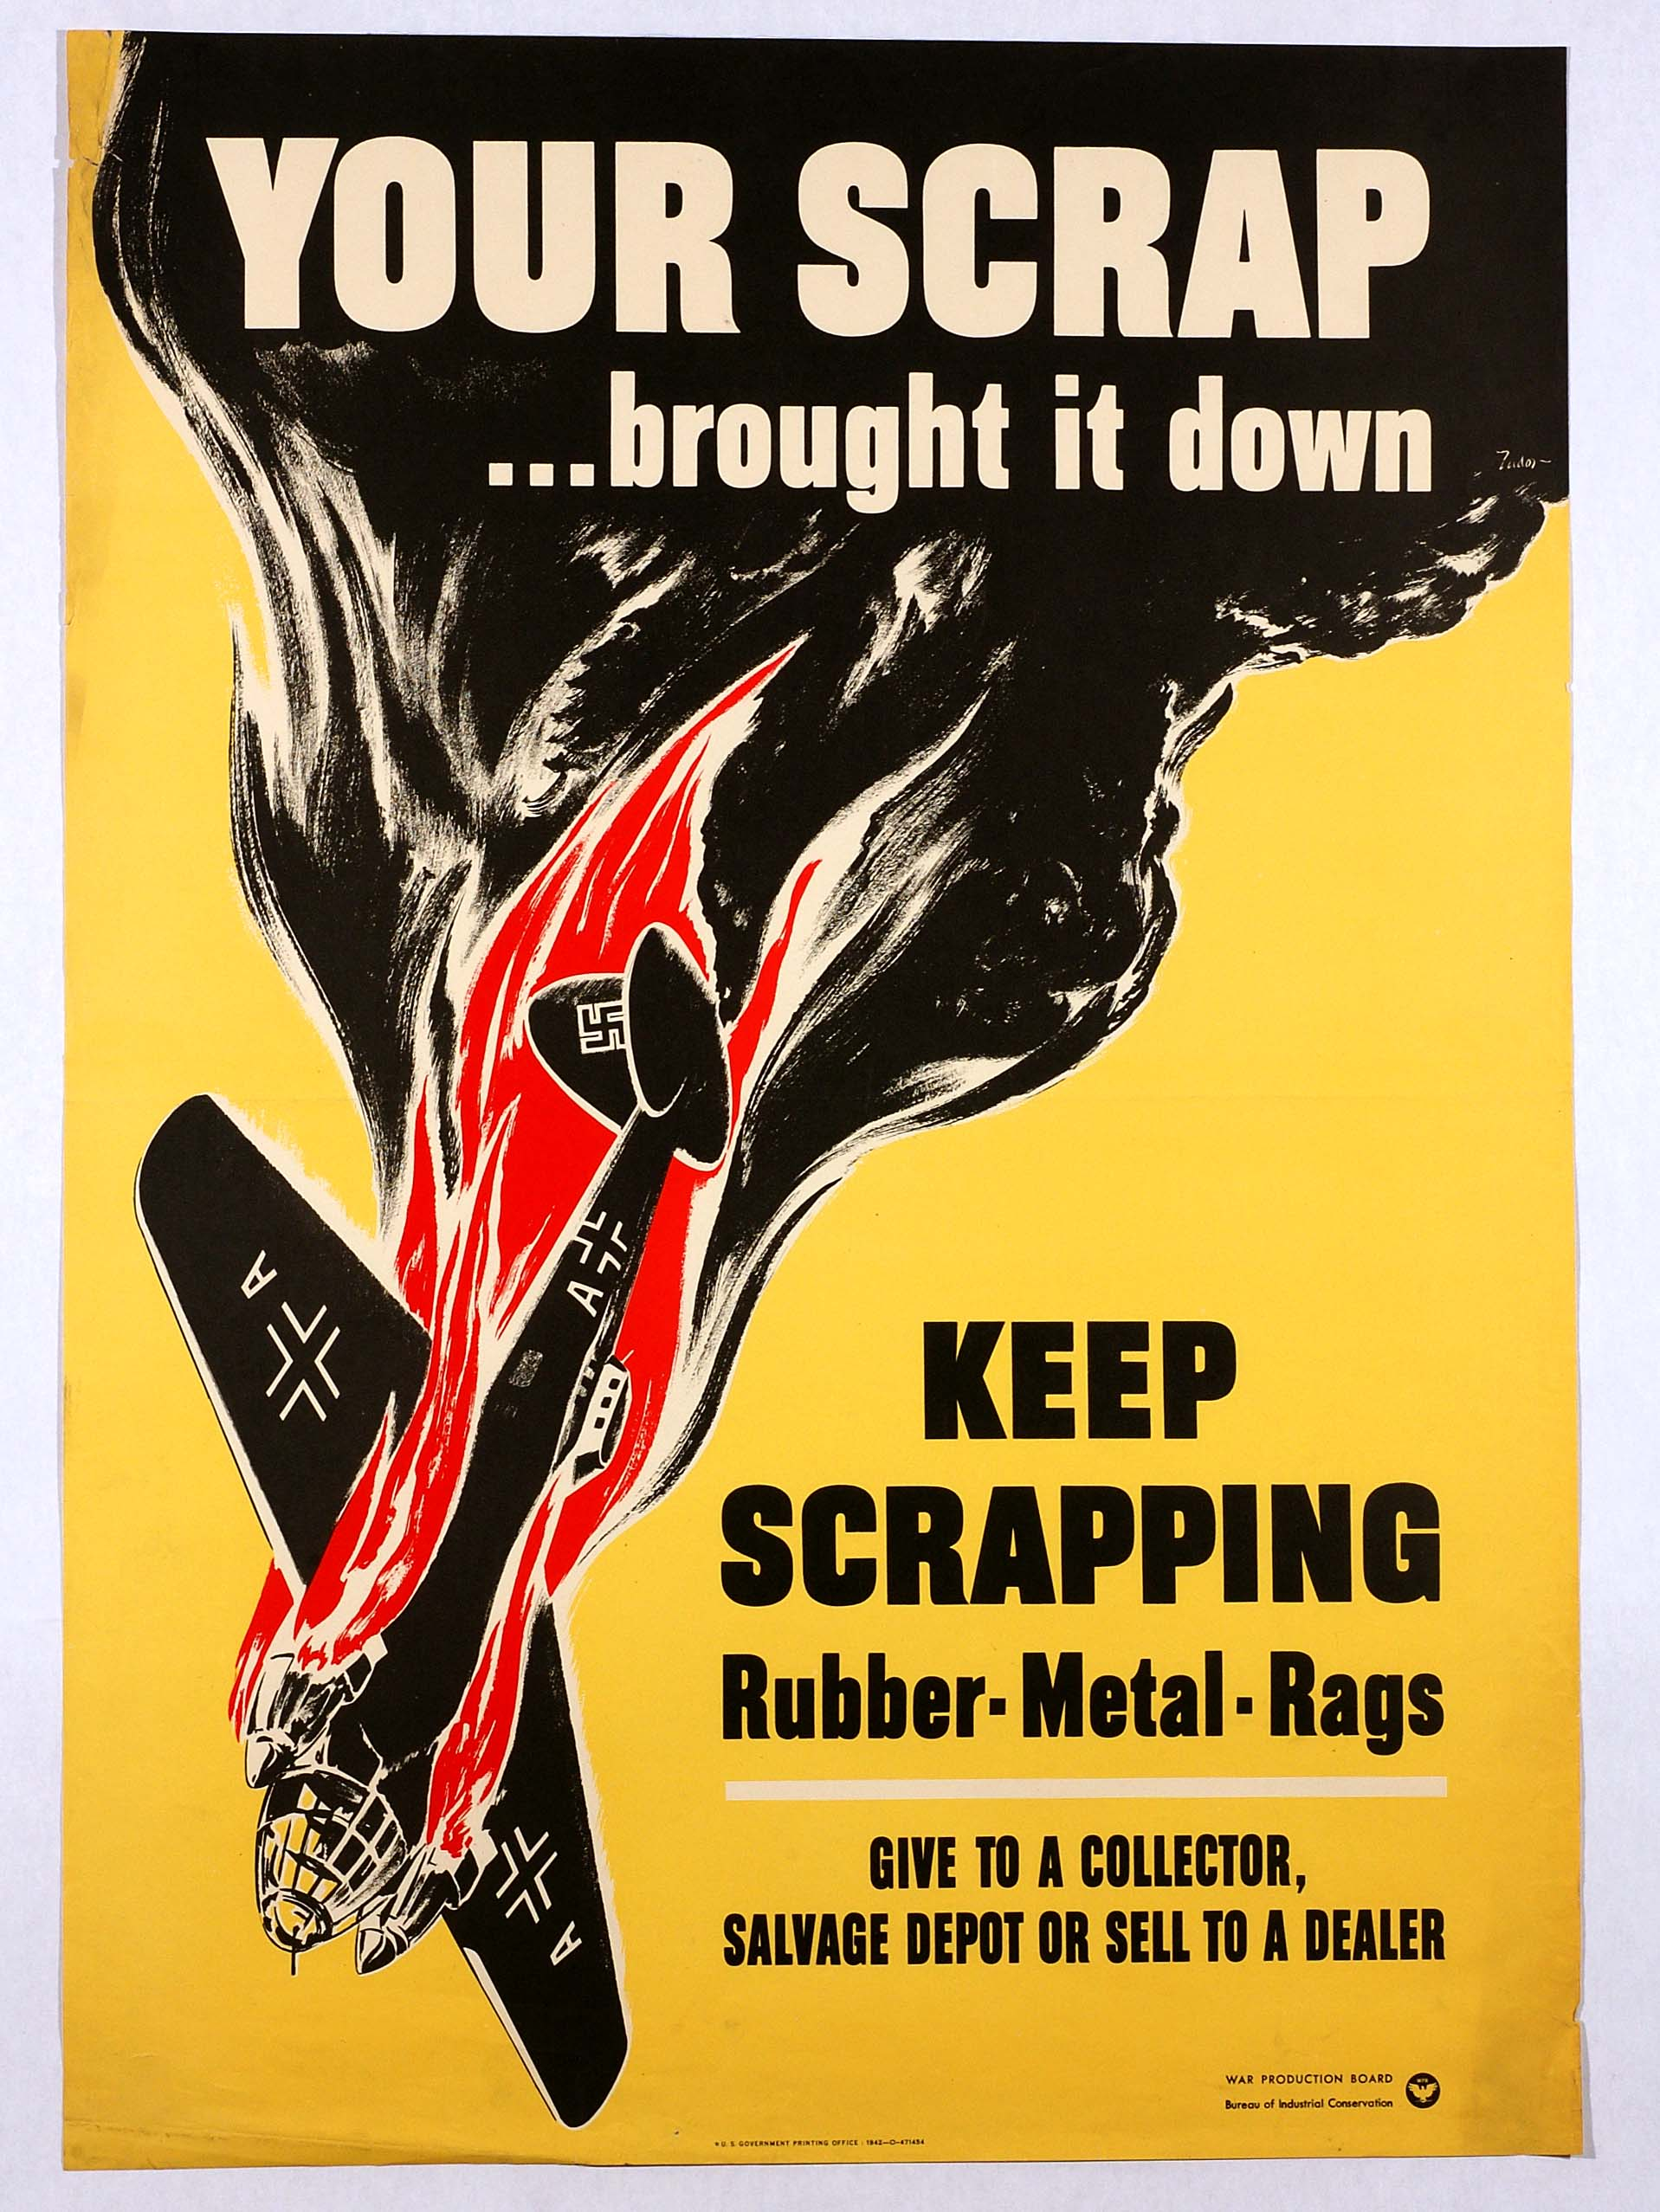 World War Posters On Pinterest World War Ii Posters And